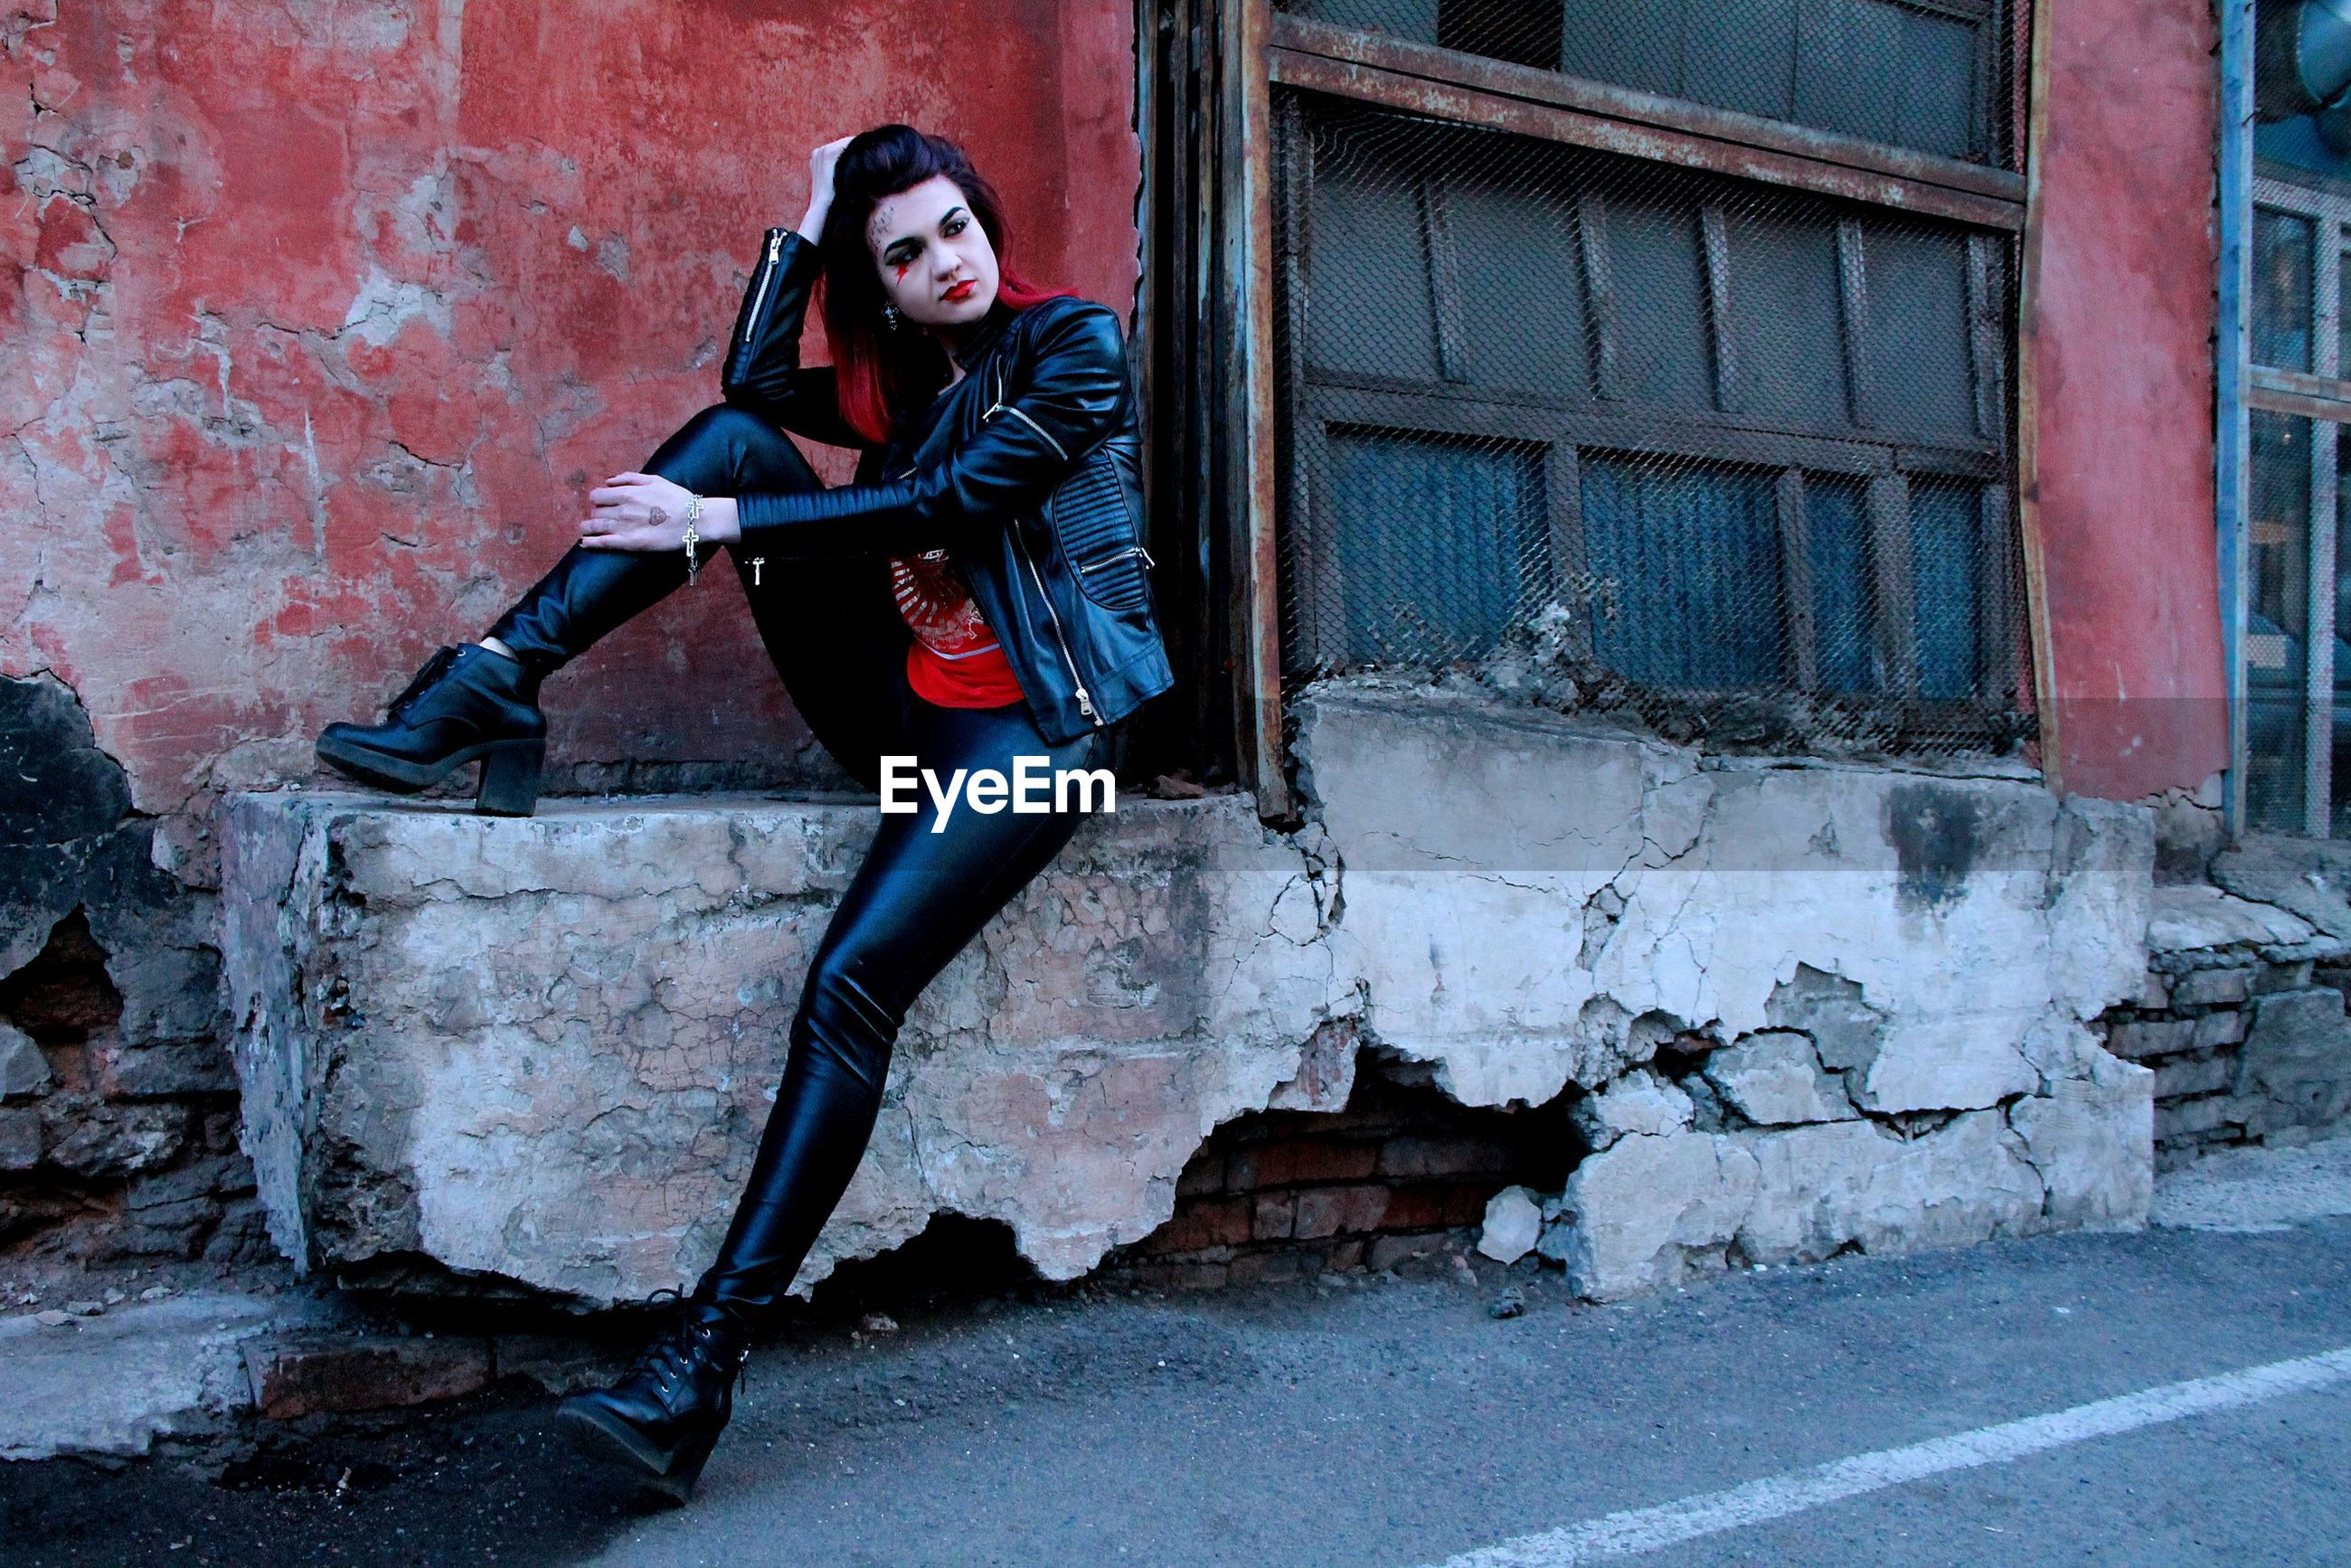 Portrait of punk woman by abandoned building